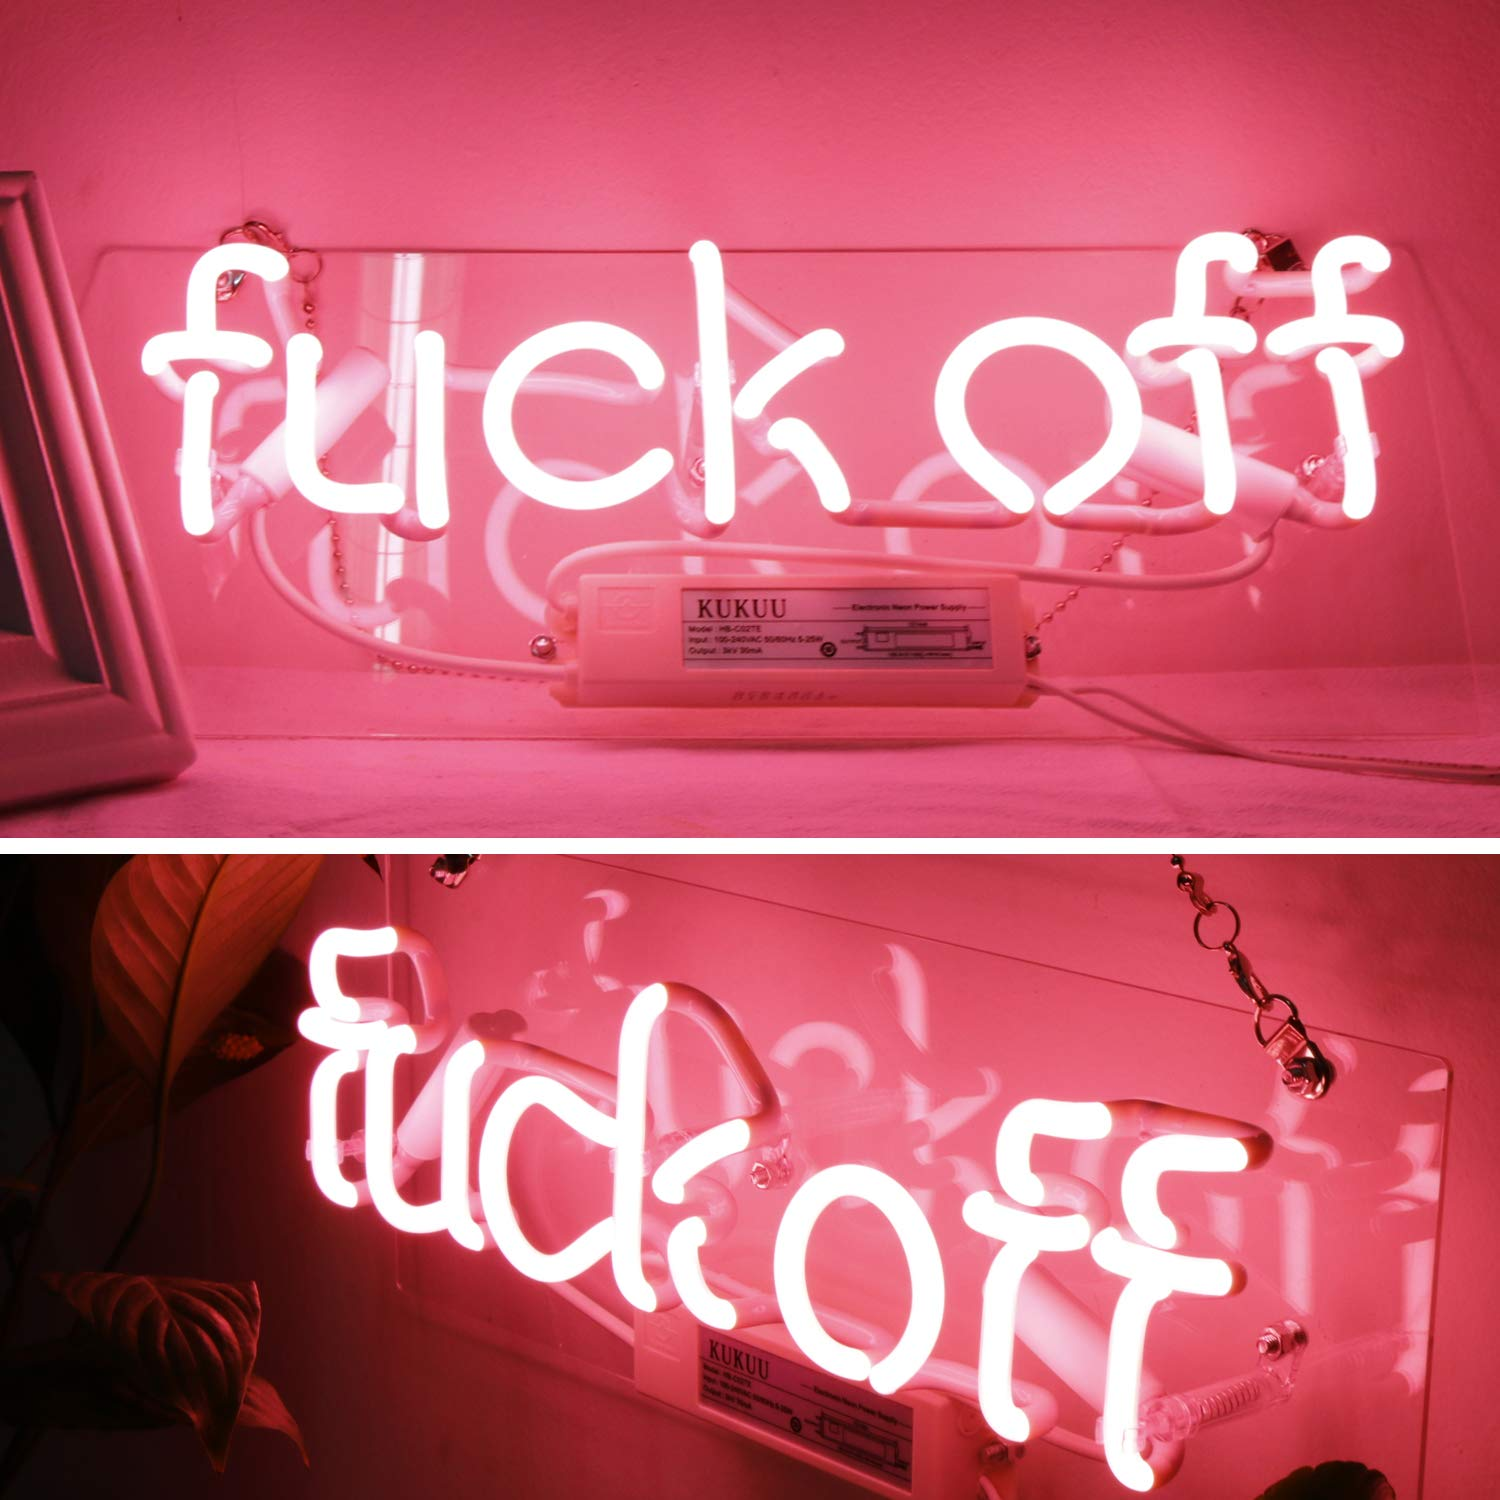 Neon Signs Fuck Off Pink Neon Lights Neon Light Sign Hanging Wall Sign Fuck Lights Neon Words Real Neon for Wall Bedroom Room Decor Party Holiday Decoration Signs